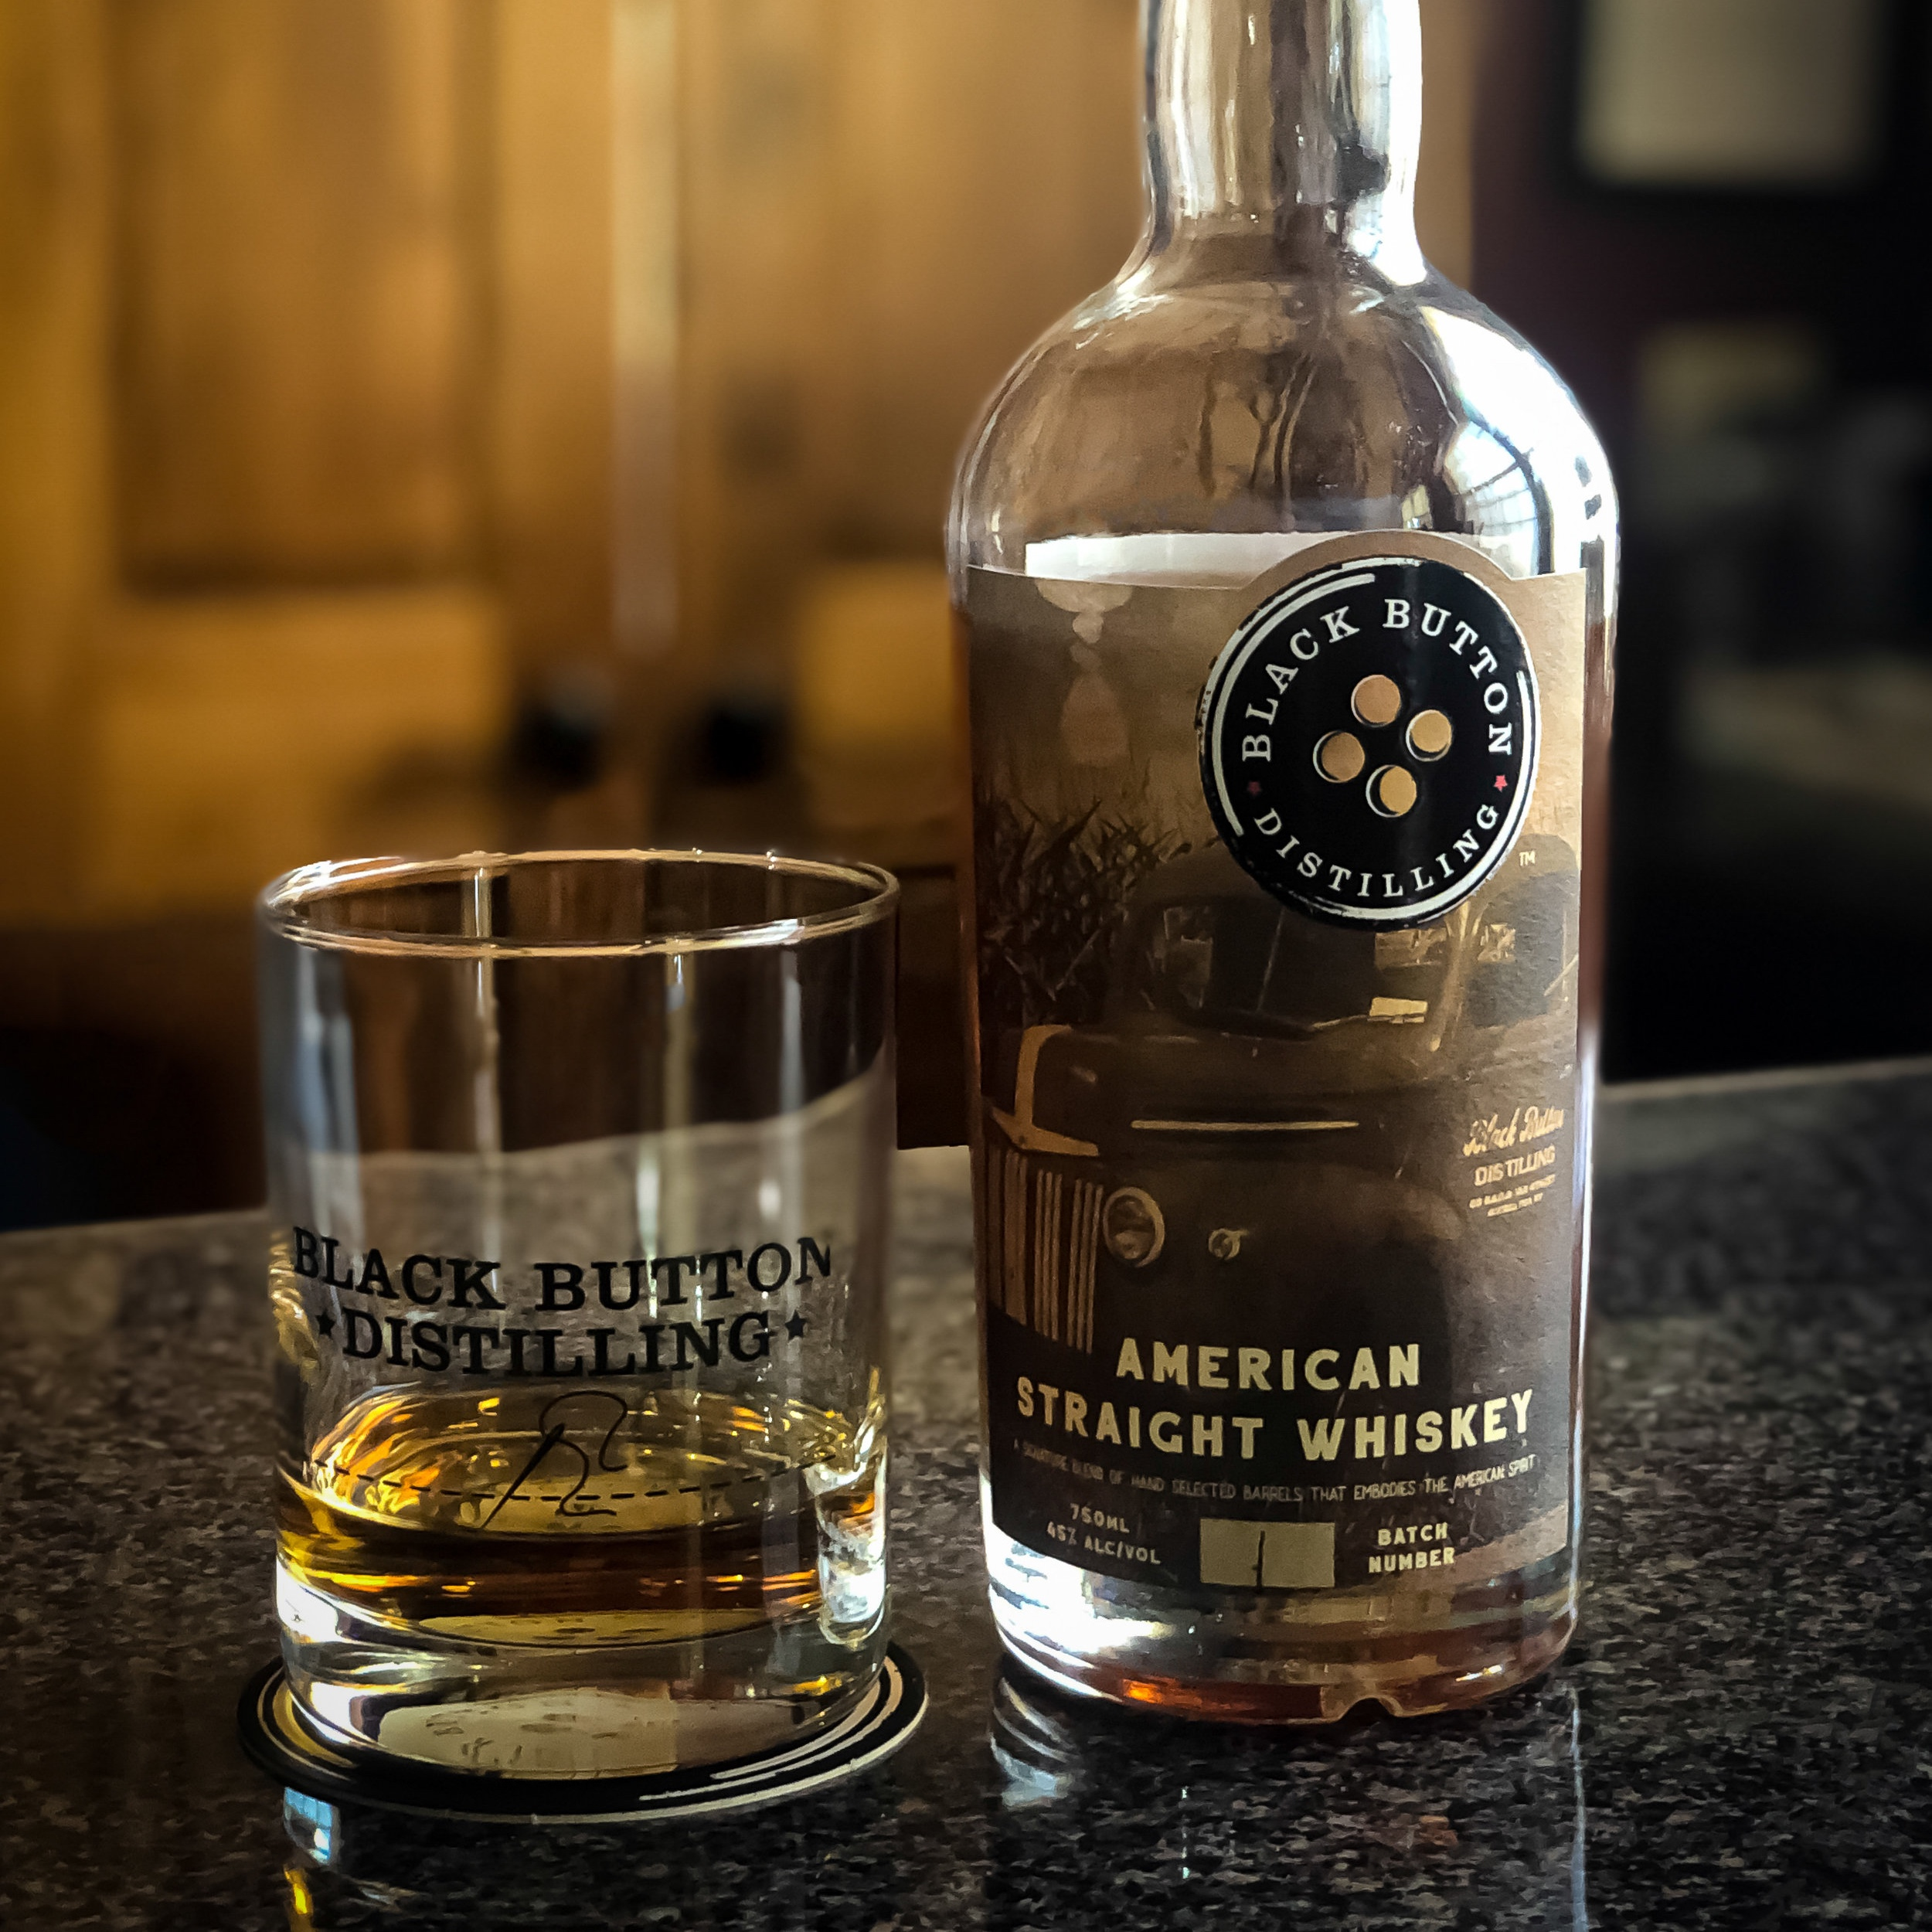 Coming Soon- Black Button Distilling American Straight Whiskey